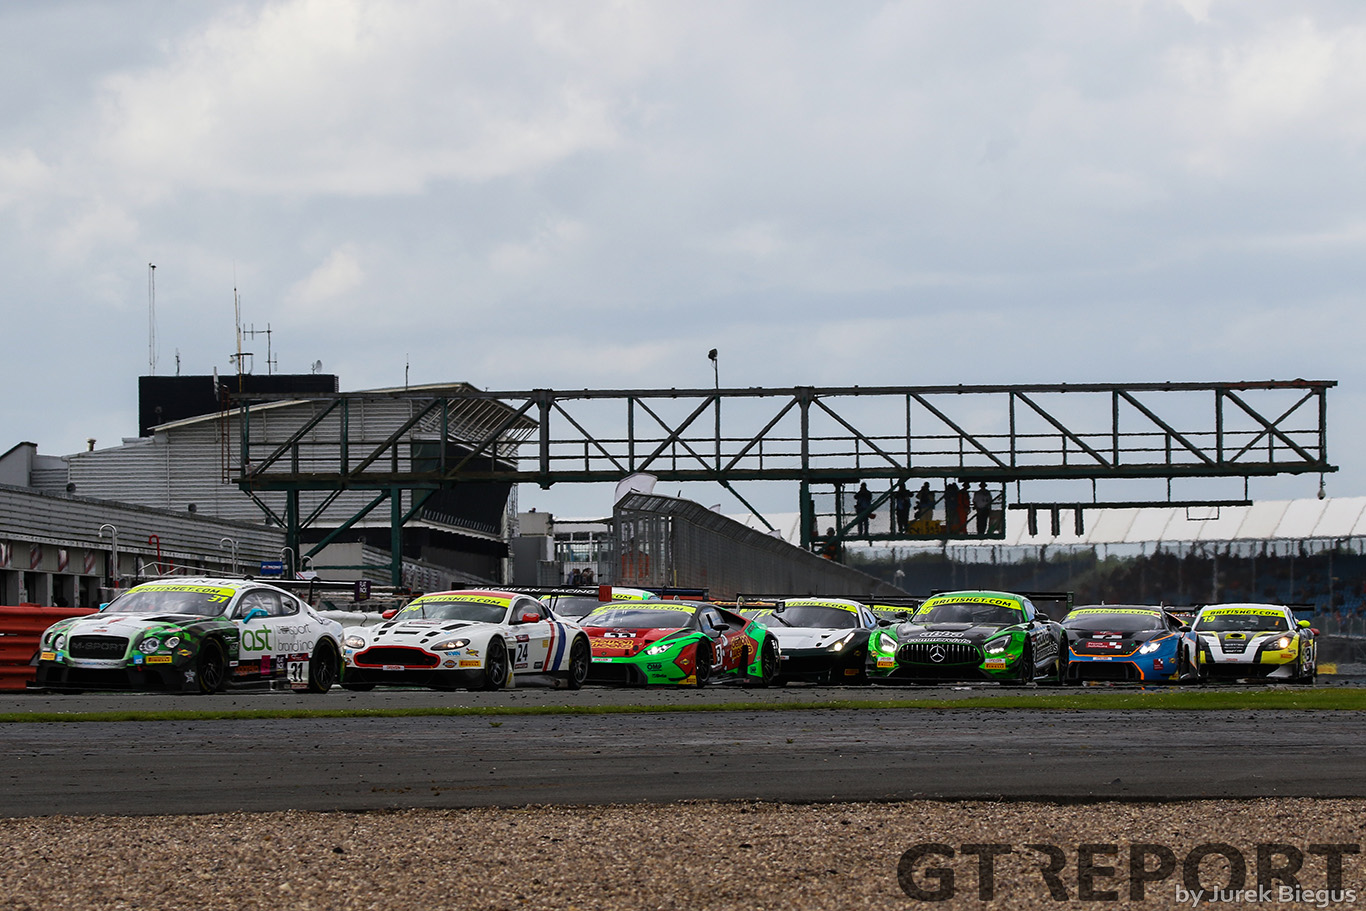 British GT Silverstone 500 race report: 500 ways to win a race